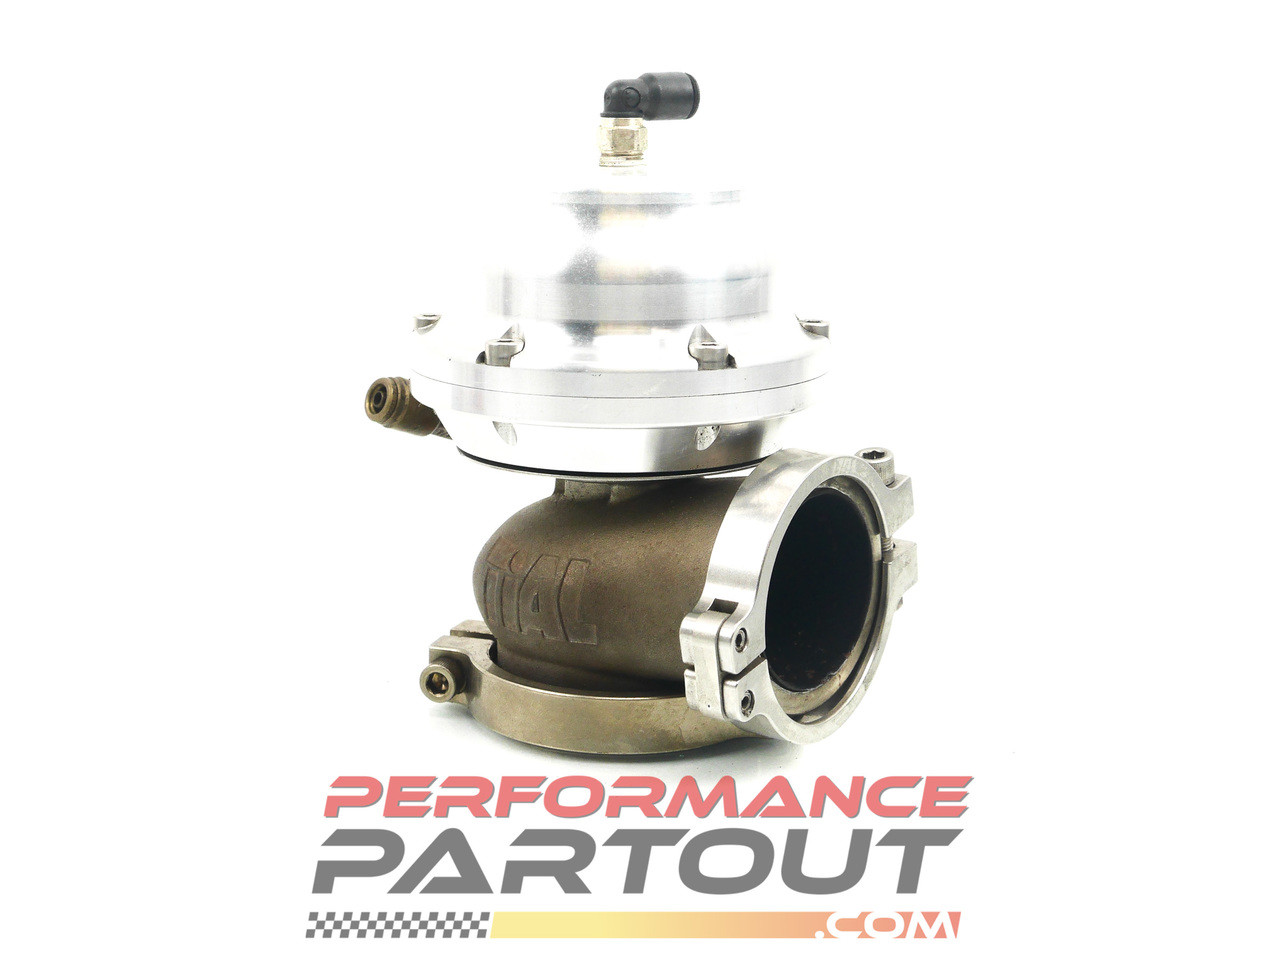 TiAl 44mm external wastegate